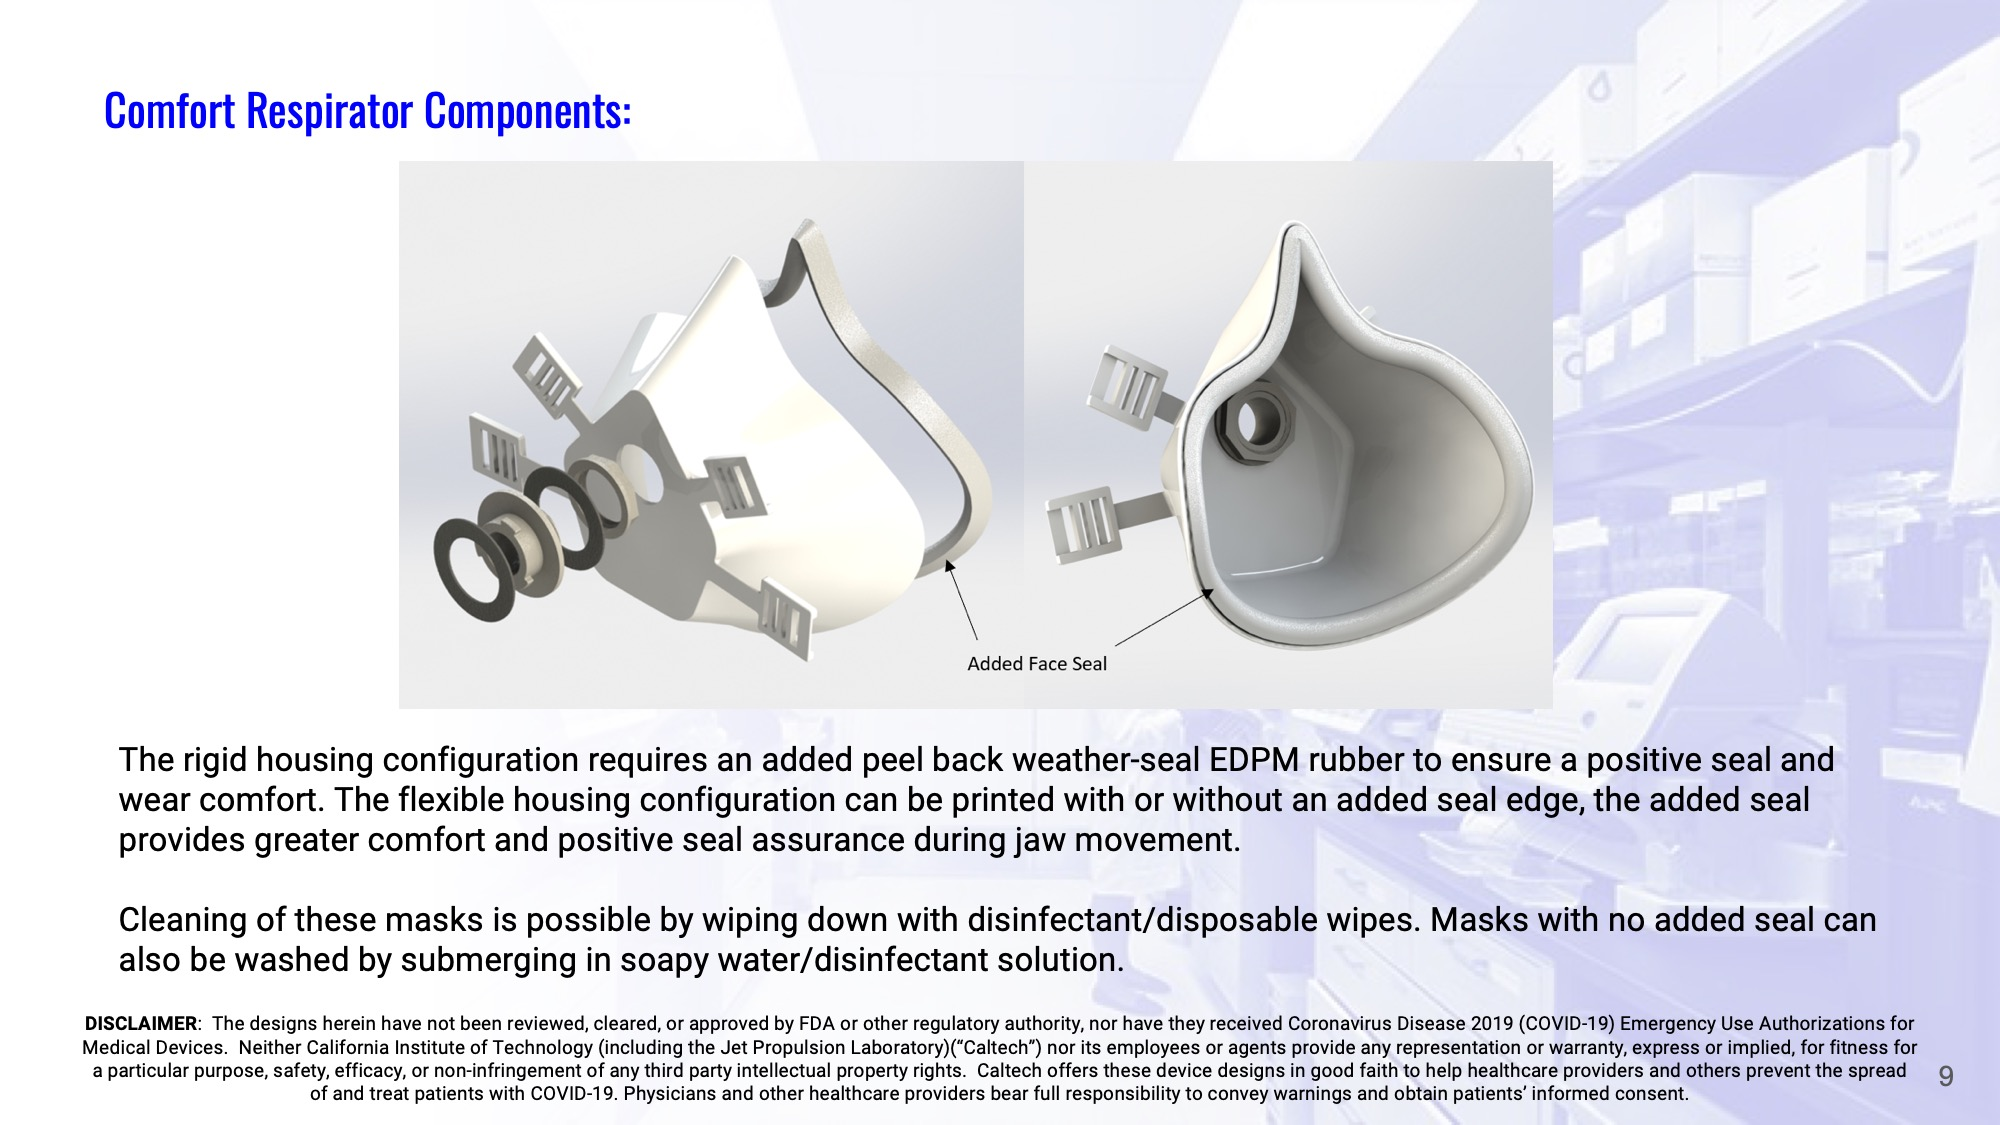 Slide 9: Comfort Respirator – components: The rigid housing configuration requires an added peel back weather-seal EDPM rubber to ensure a positive seal and wear comfort. The flexible housing configuration can be printed with or without an added seal edge, the added seal provides greater comfort and positive seal assurance during jaw movement.  Cleaning of these masks is possible by wiping down with disinfectant/disposable wipes. Masks with no added seal can also be washed by submerging in soapy water/disinfectant solution.